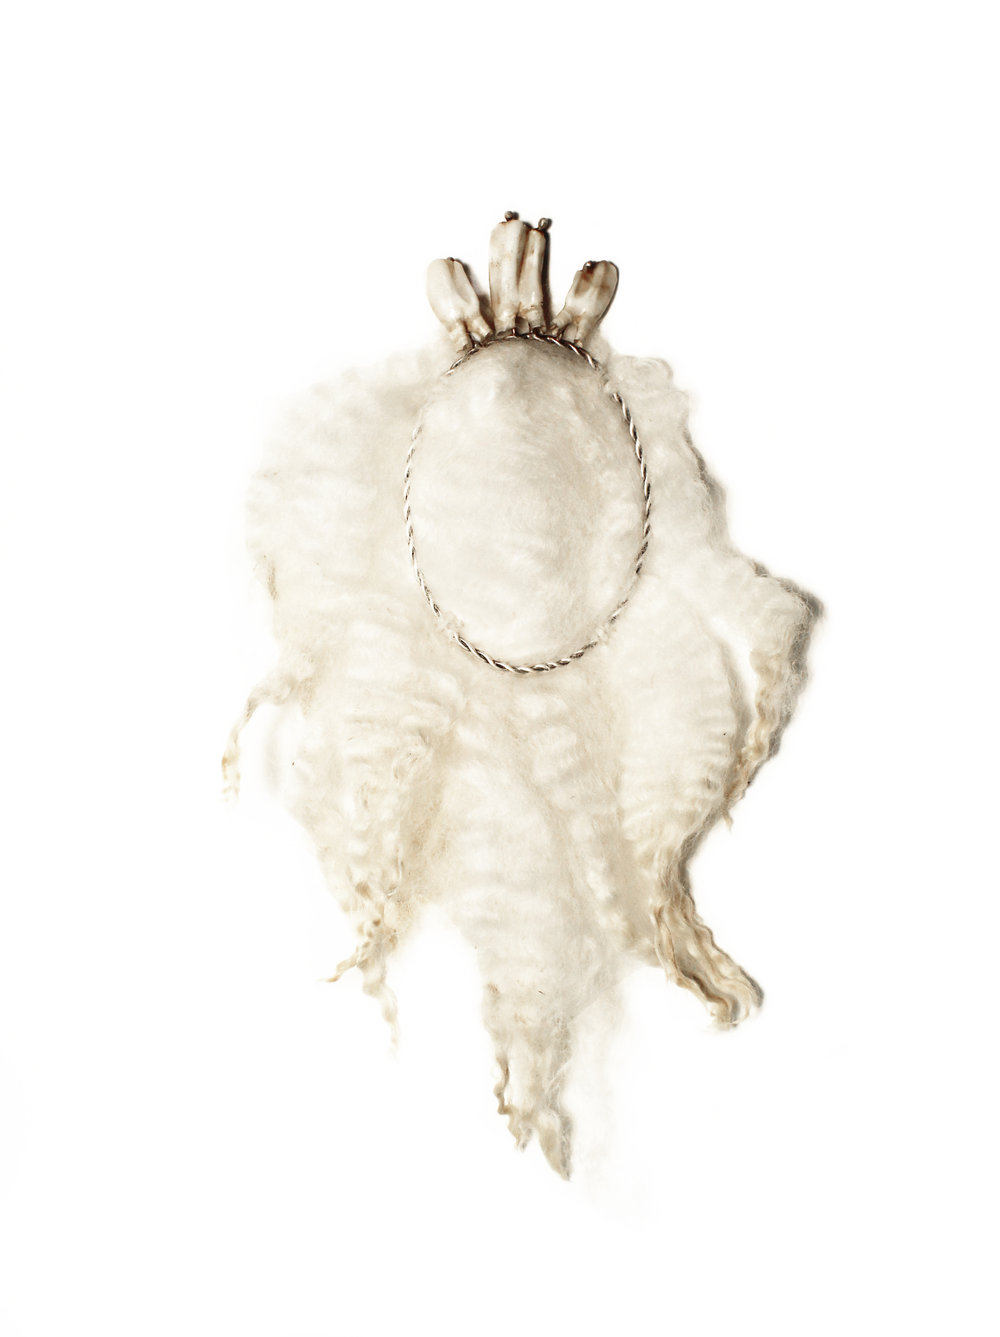 Silence  sheep wool, sheep teeth, silver, steel